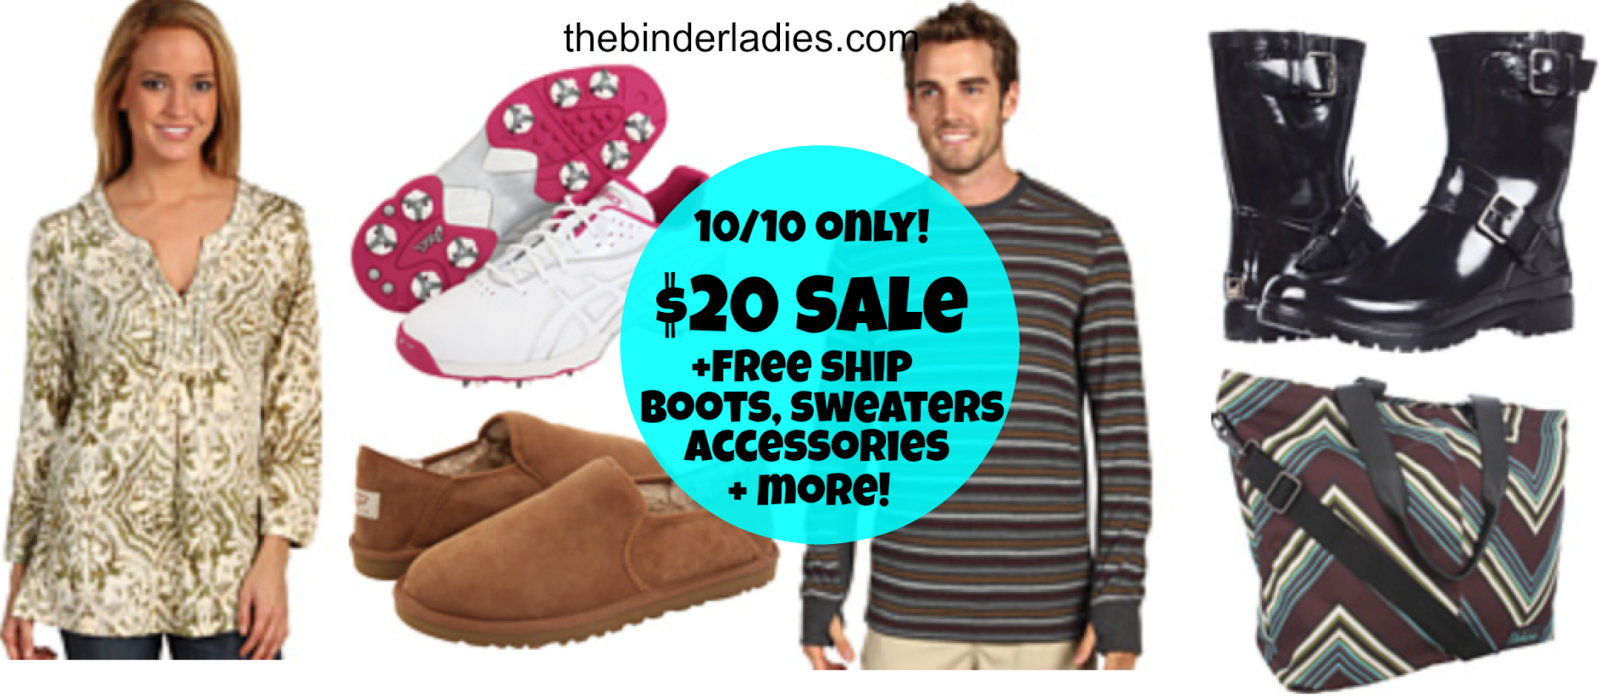 http://www.thebinderladies.com/2014/10/today-only-1010-6pmcom-20-sale-free.html#.VDgRNEvdtbw